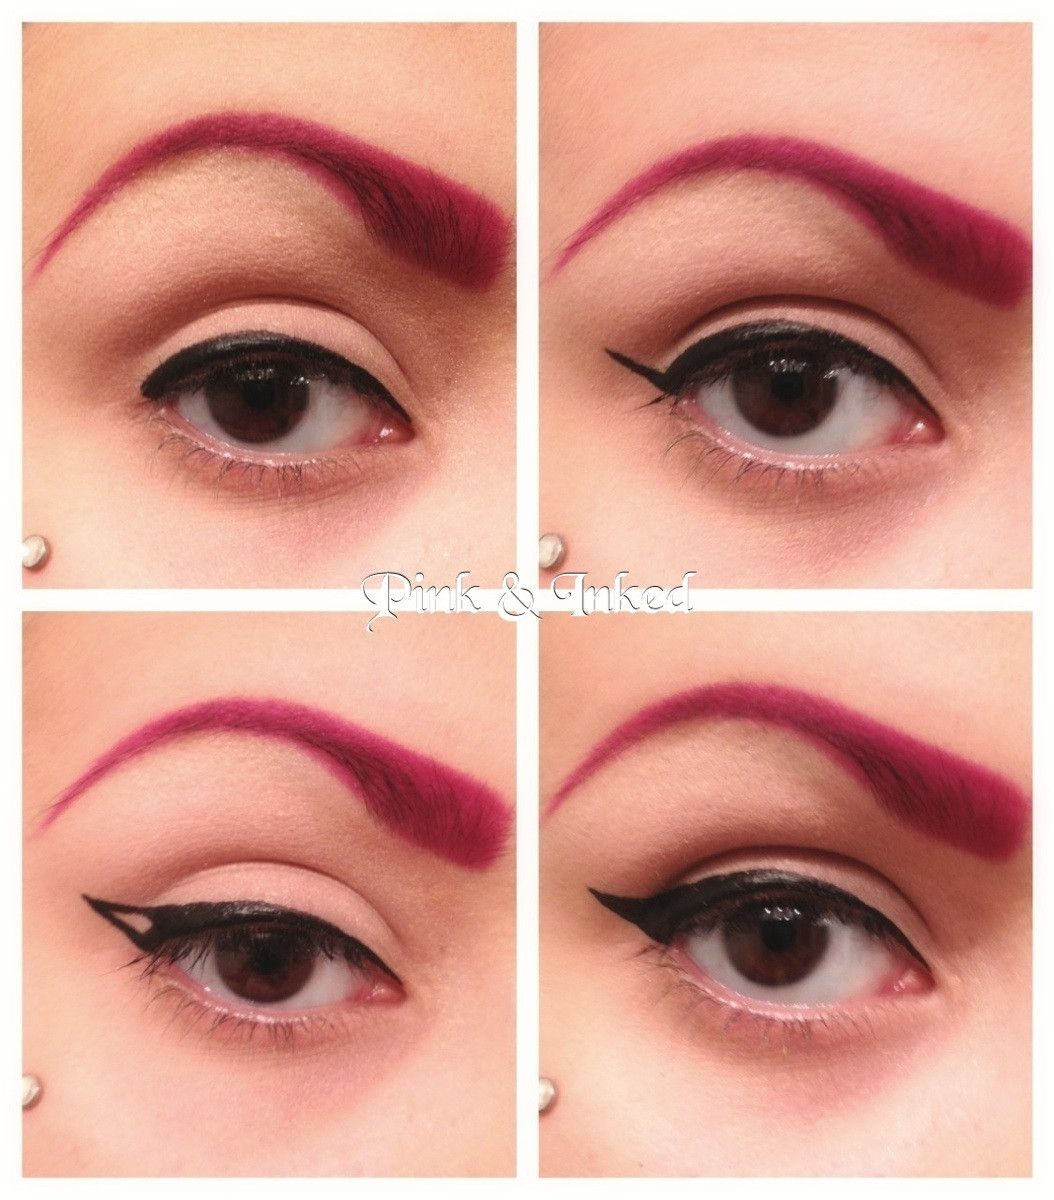 Simple winged eyeliner tutorial I made. Winged eyeliner